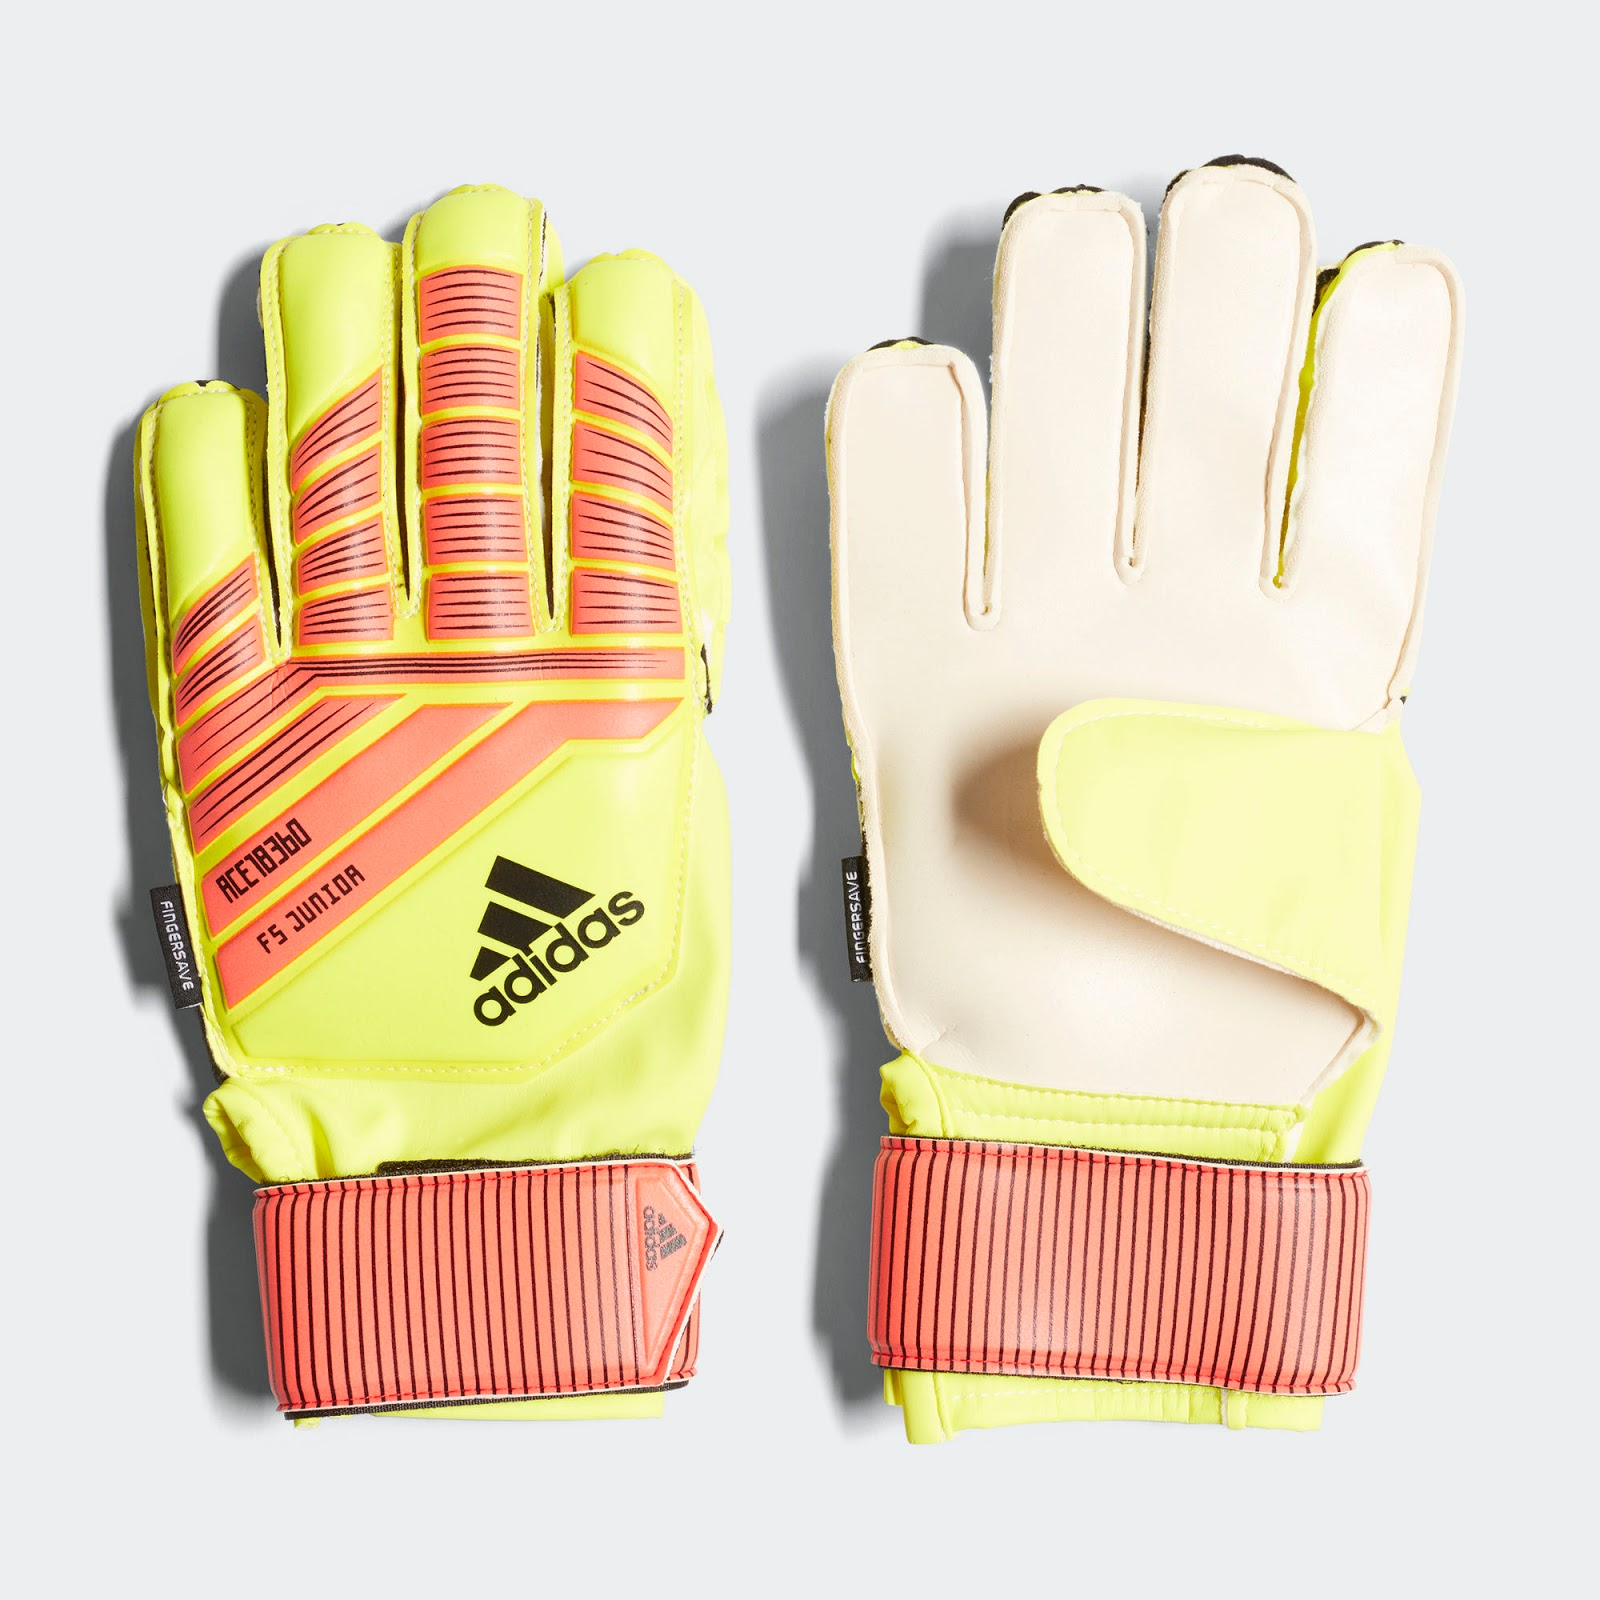 527dcaf795f6 A striking look, the Adidas Predator Pro 18 2018 World Cup gloves are  hi-vis yellow (electricity) with flashy red applications and black  brandings and ...